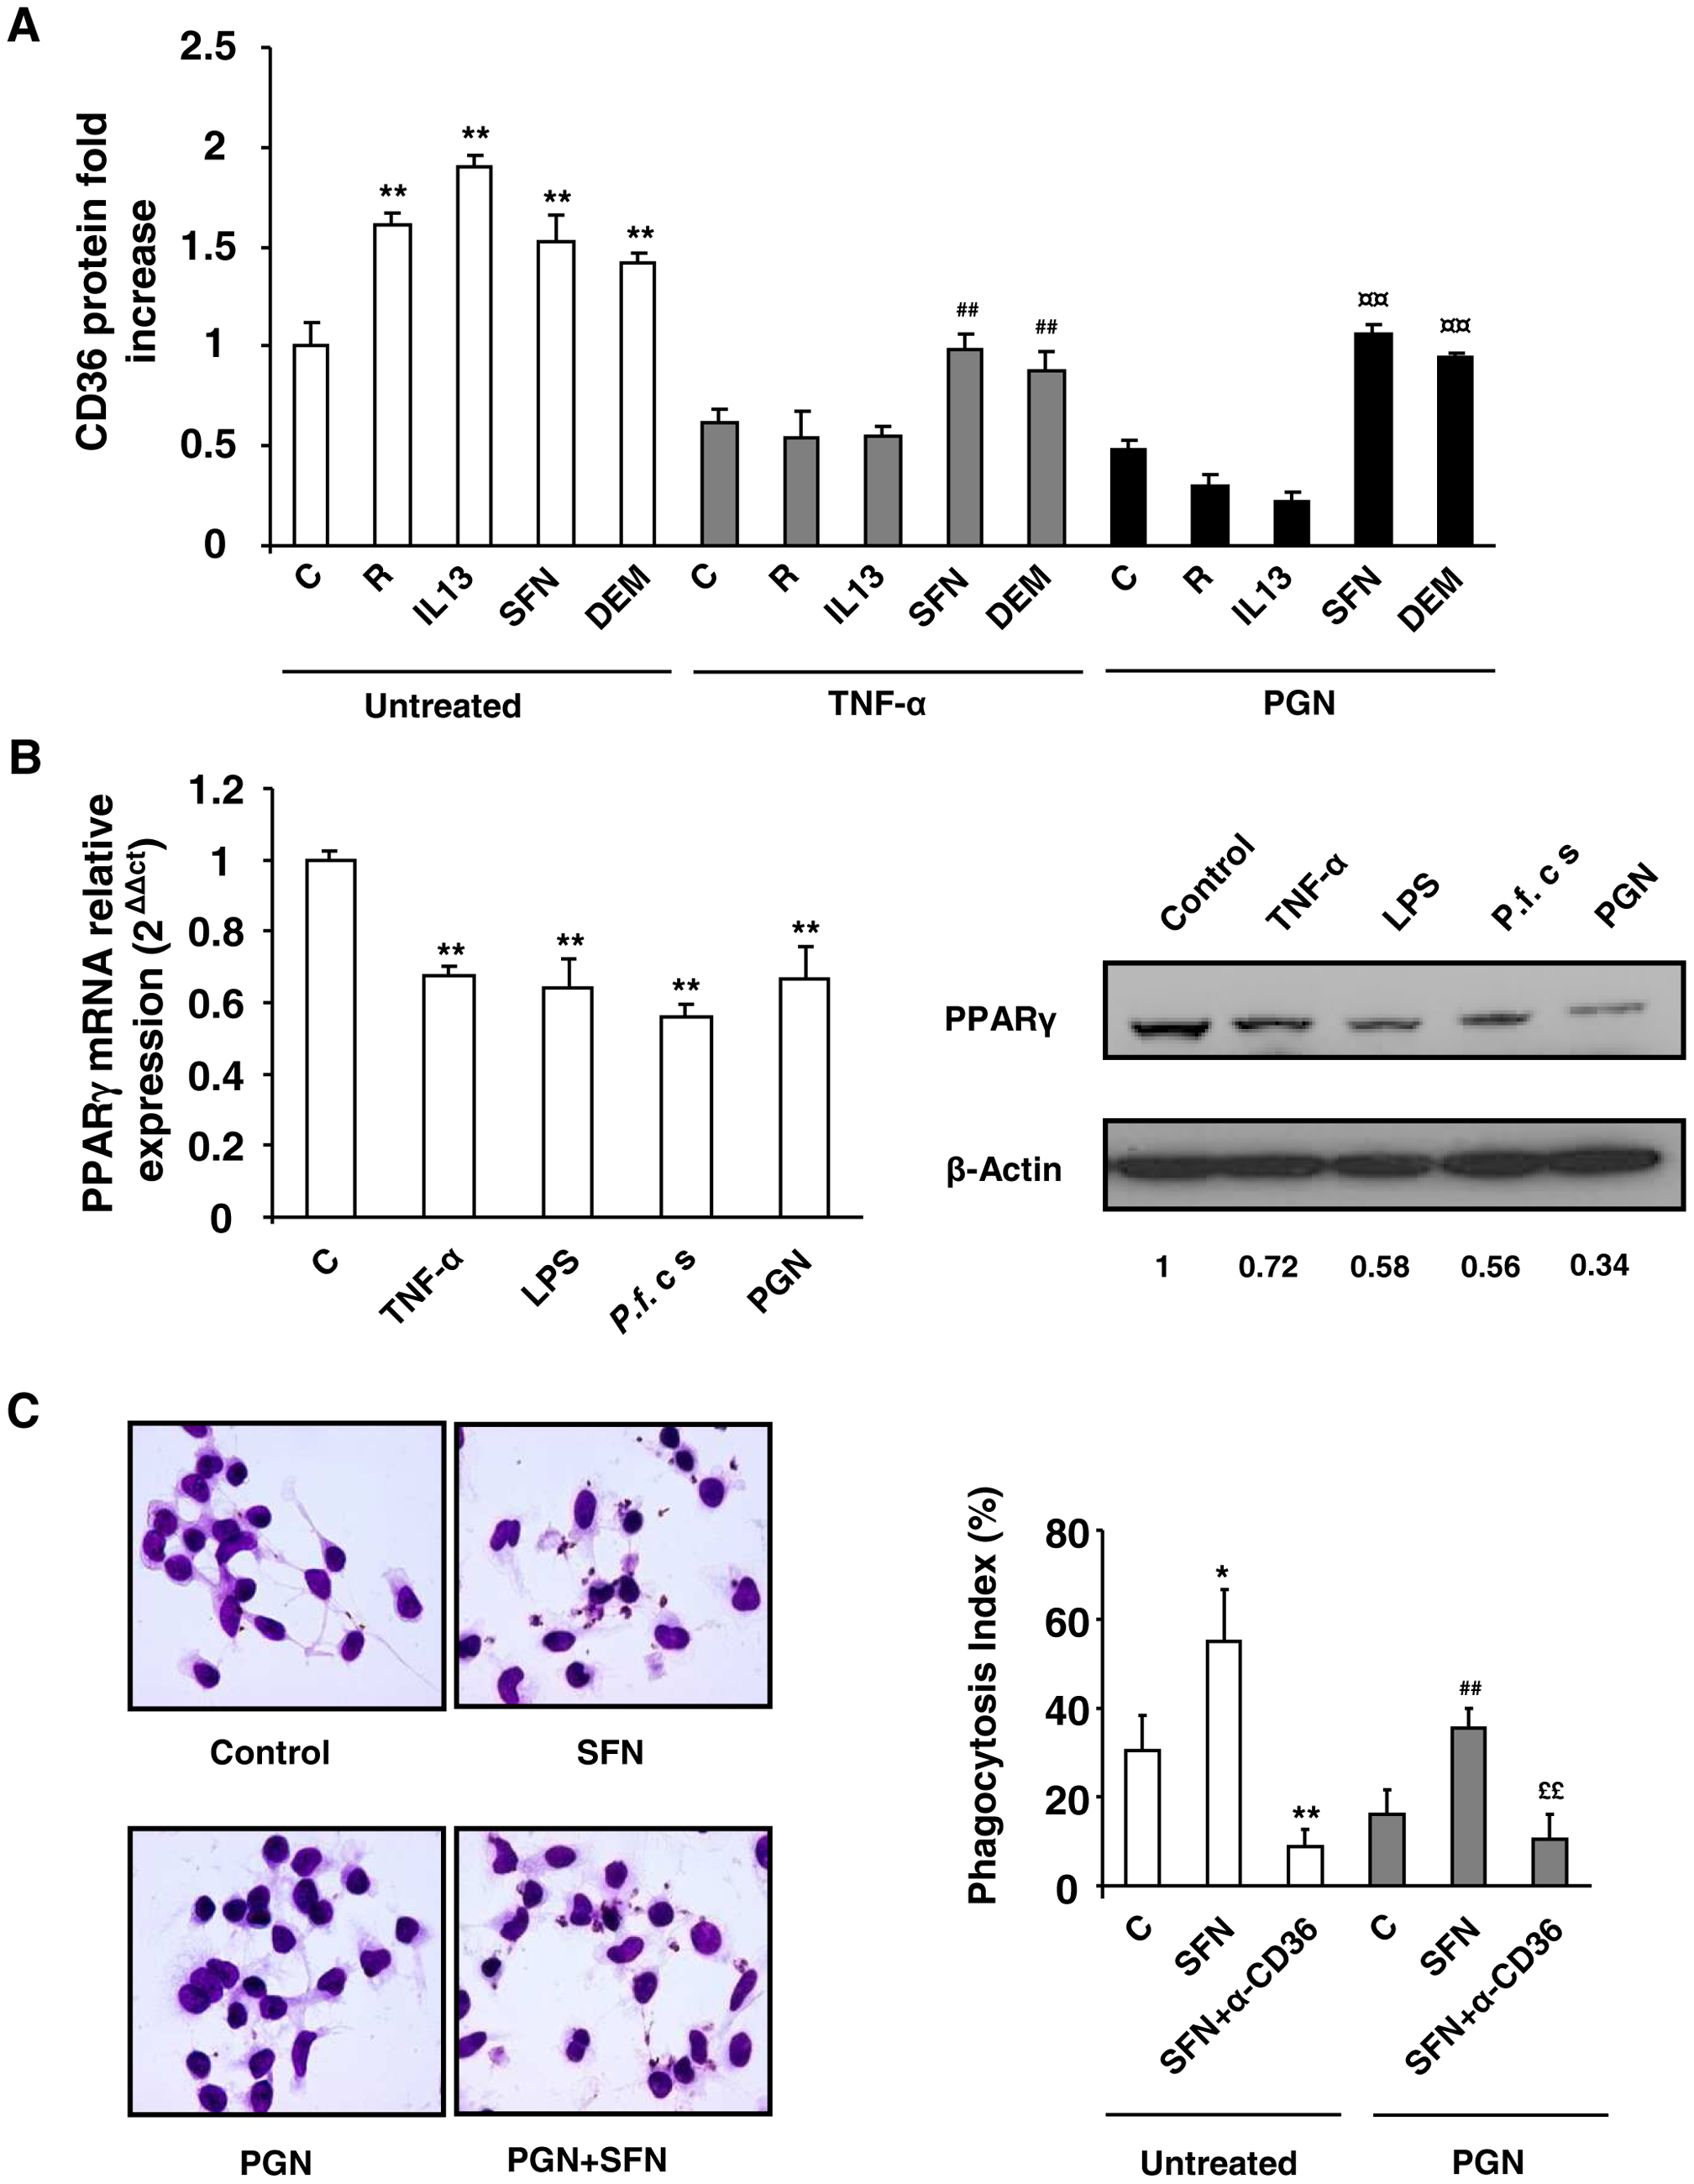 Nrf2 activators promote CD36 and increase <i>P.falciparum</i> clearance by human MDMs in inflammatory conditions.